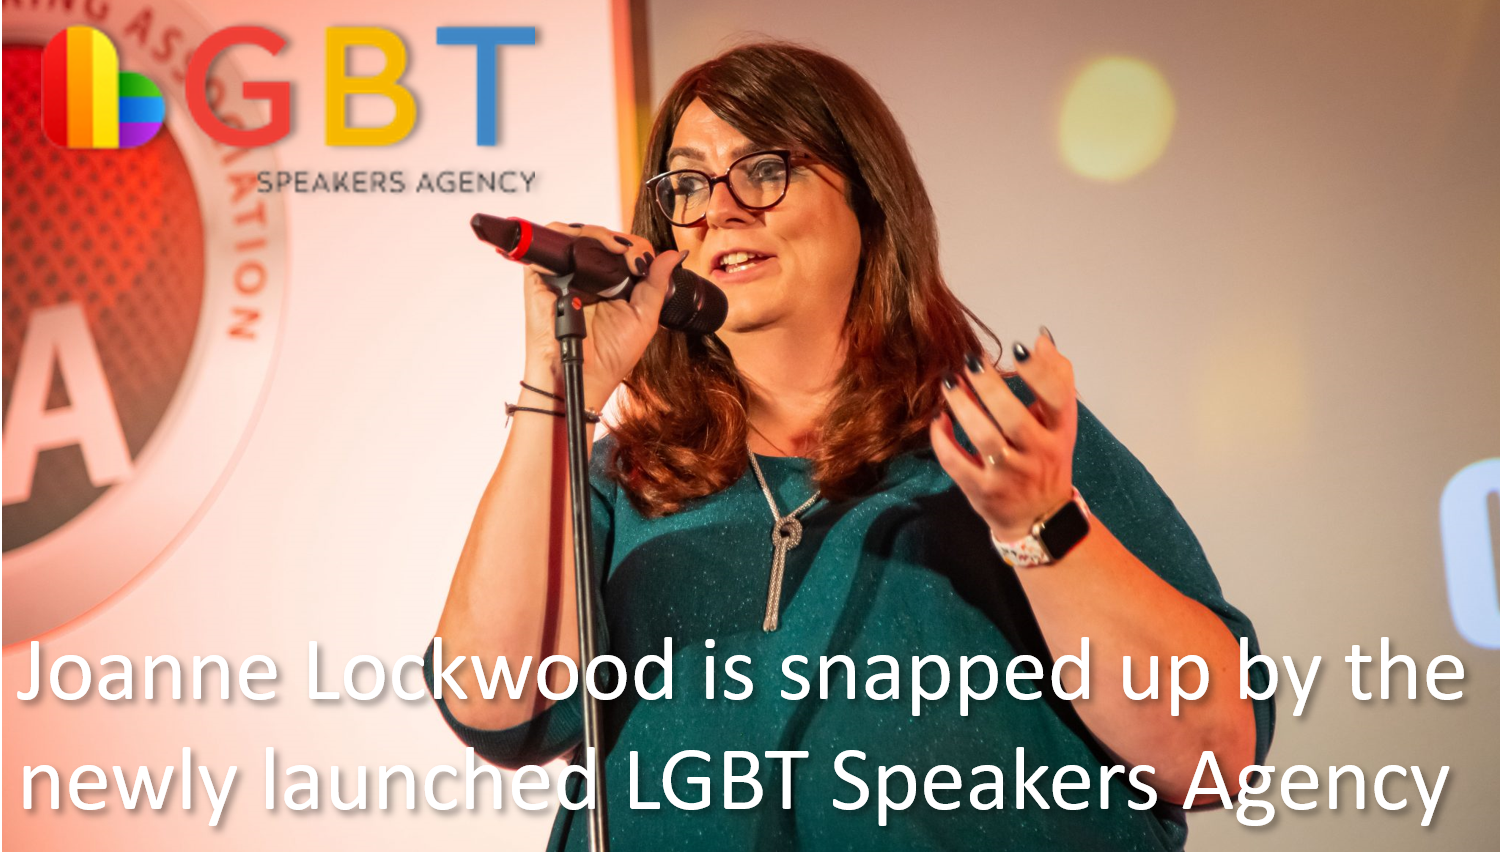 Joanne Lockwood is snapped up by the newly launched LGBT Speakers Agency